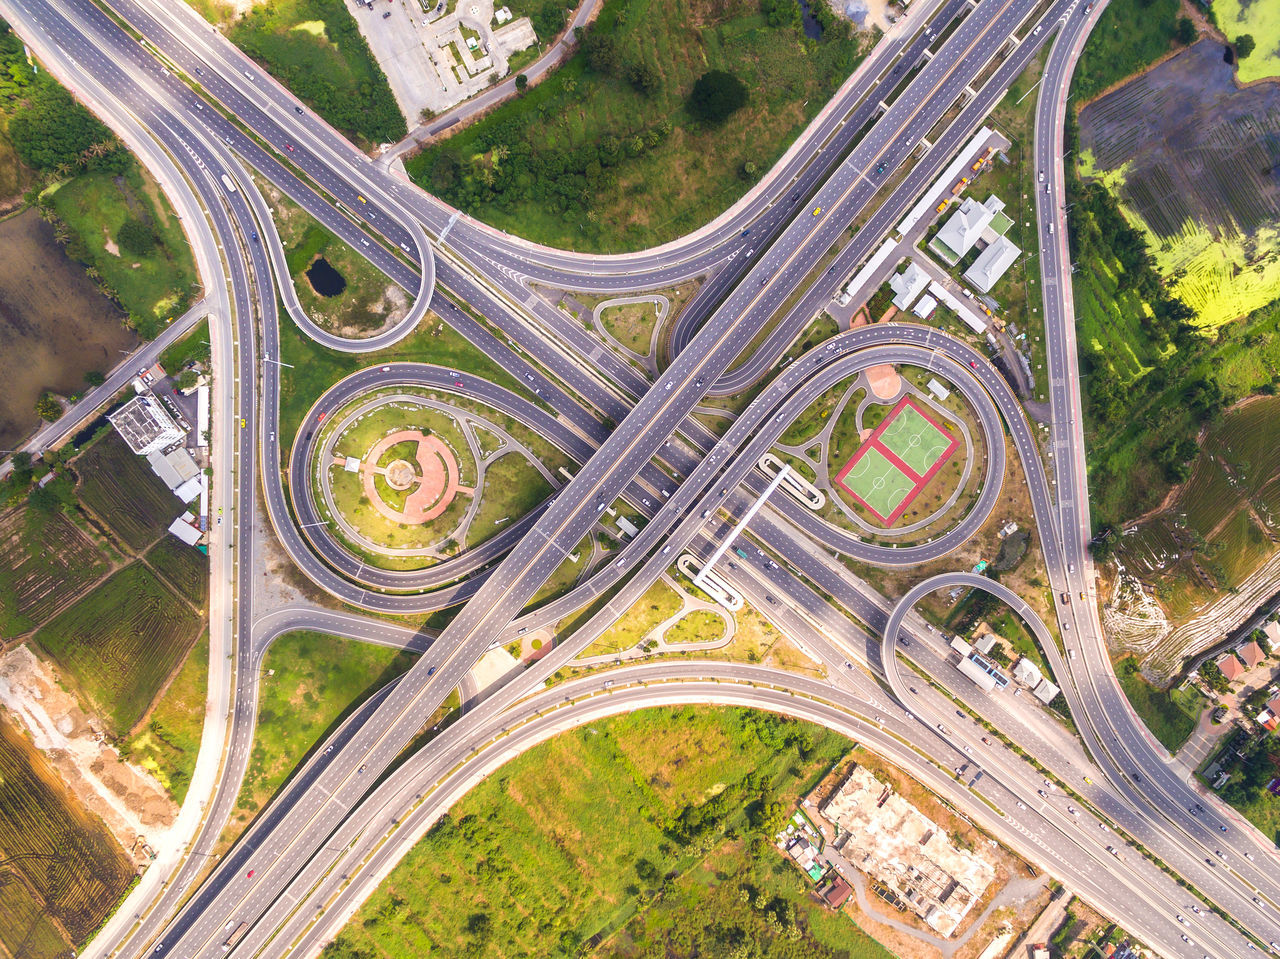 Aerial View Architecture Car City City Life Connection Curve Day Elevated Road Flying Flying High Futuristic High Angle View High Up Highway Mode Of Transport Multiple Lane Highway Outdoors Overpass Road Road Intersection Traffic Transportation Travel Two Lane Highway